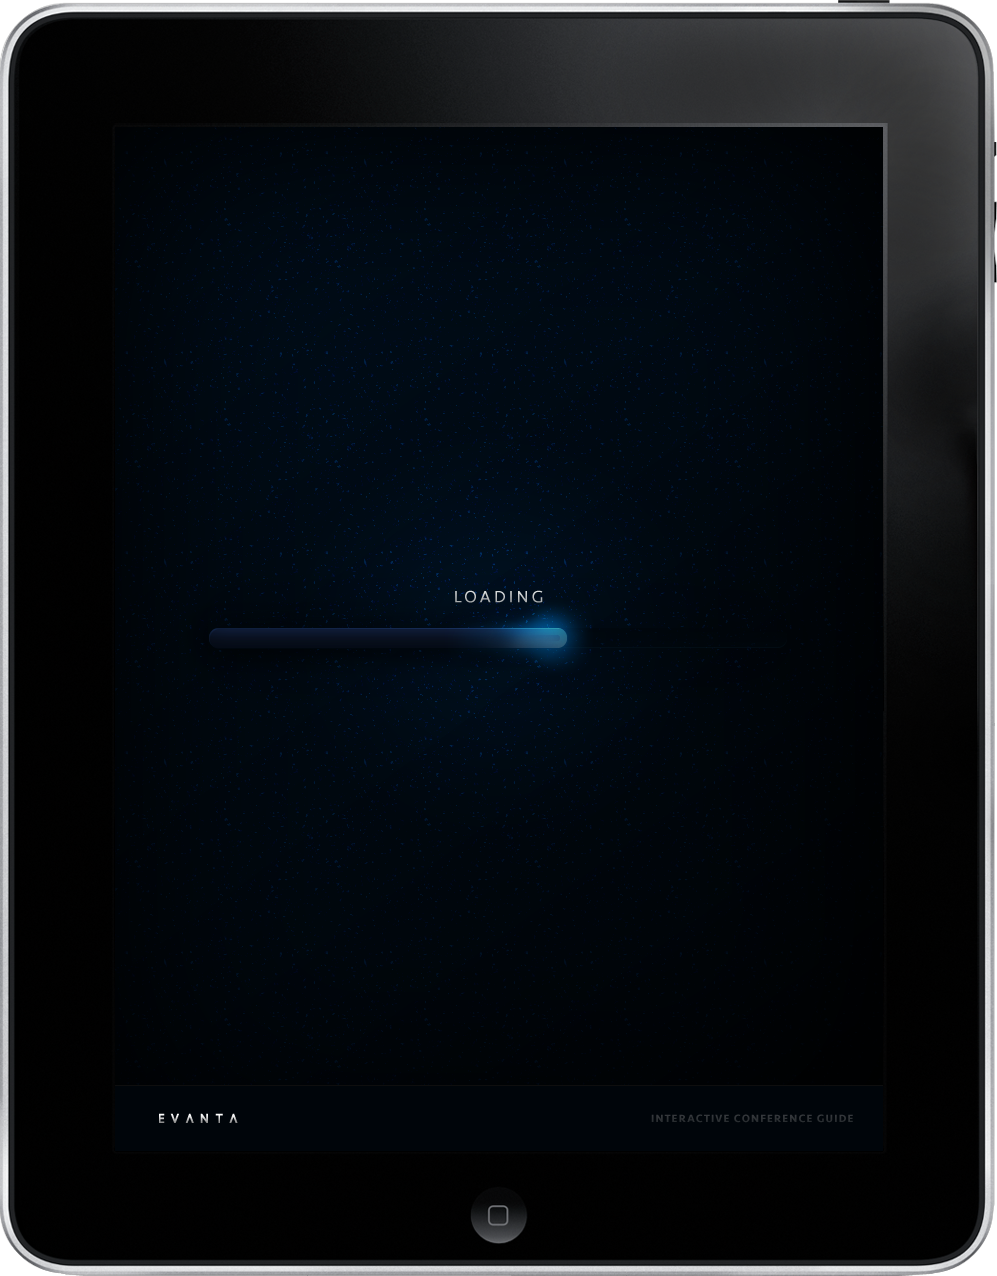 Ipad_loading-001-full